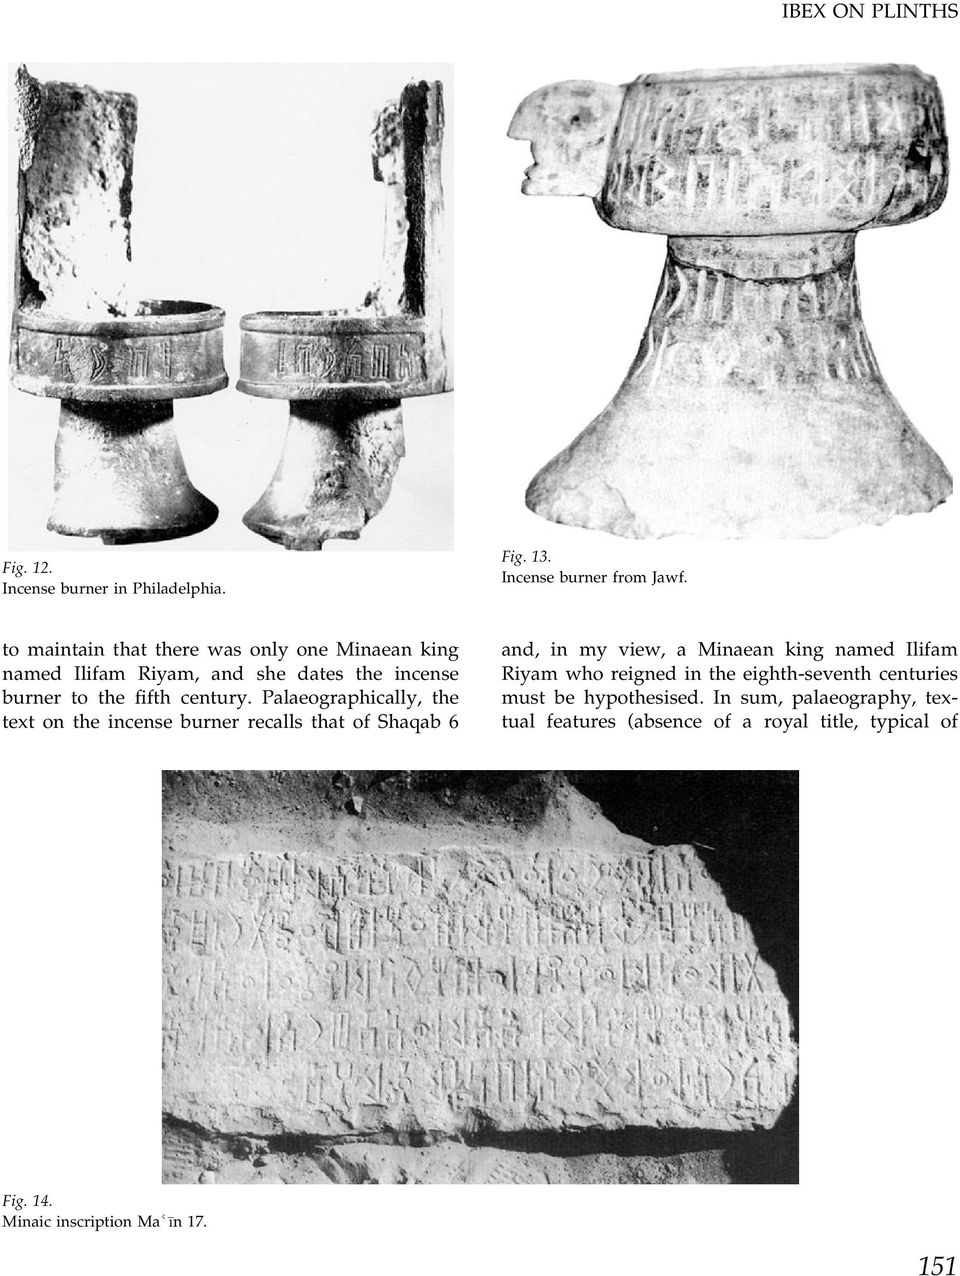 Palaeographically, the text on the incense burner recalls that of Shaqab 6 and, in my view, a Minaean king named Ilifam Riyam who